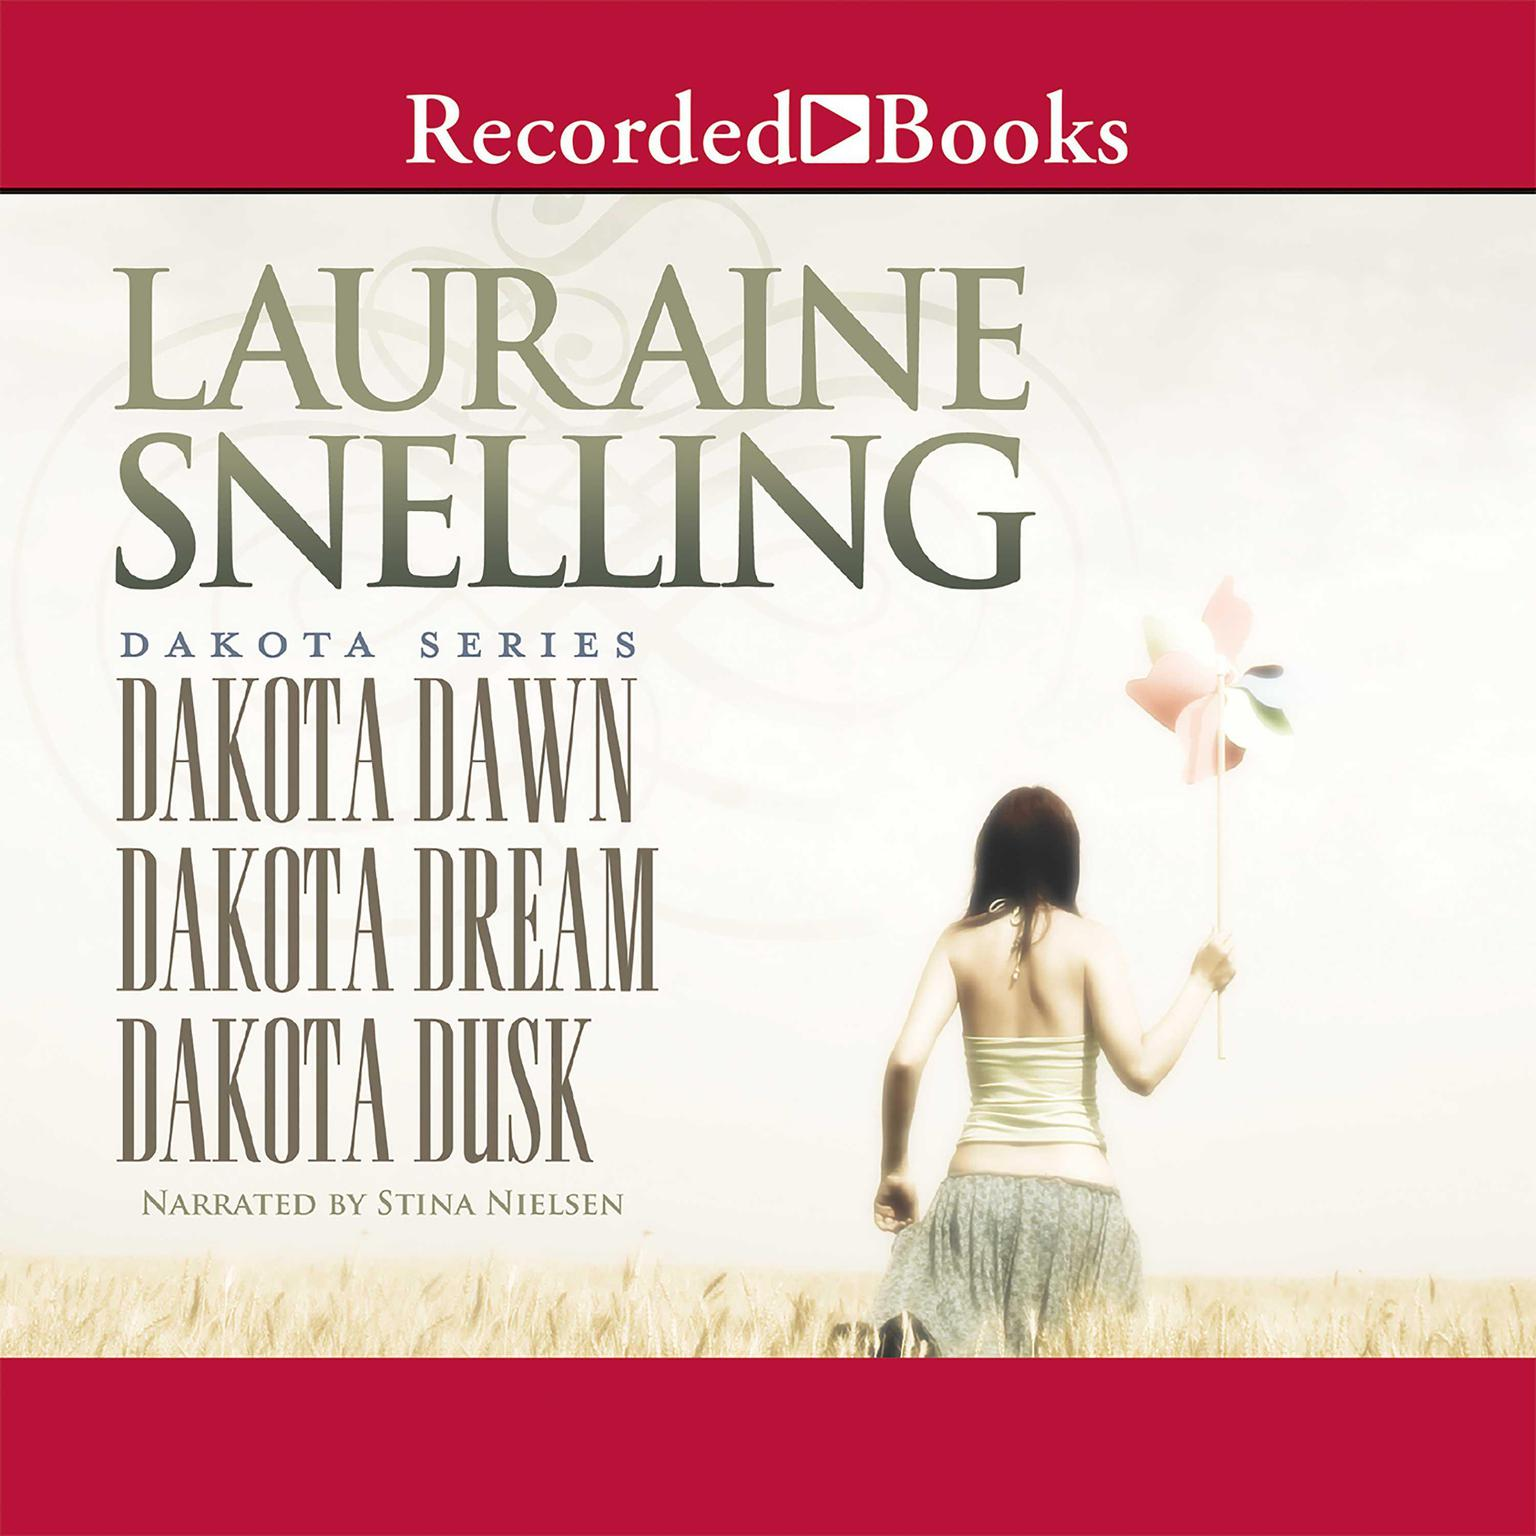 Printable Dakota Dawn/Dakota Dream/Dakota Dusk Audiobook Cover Art